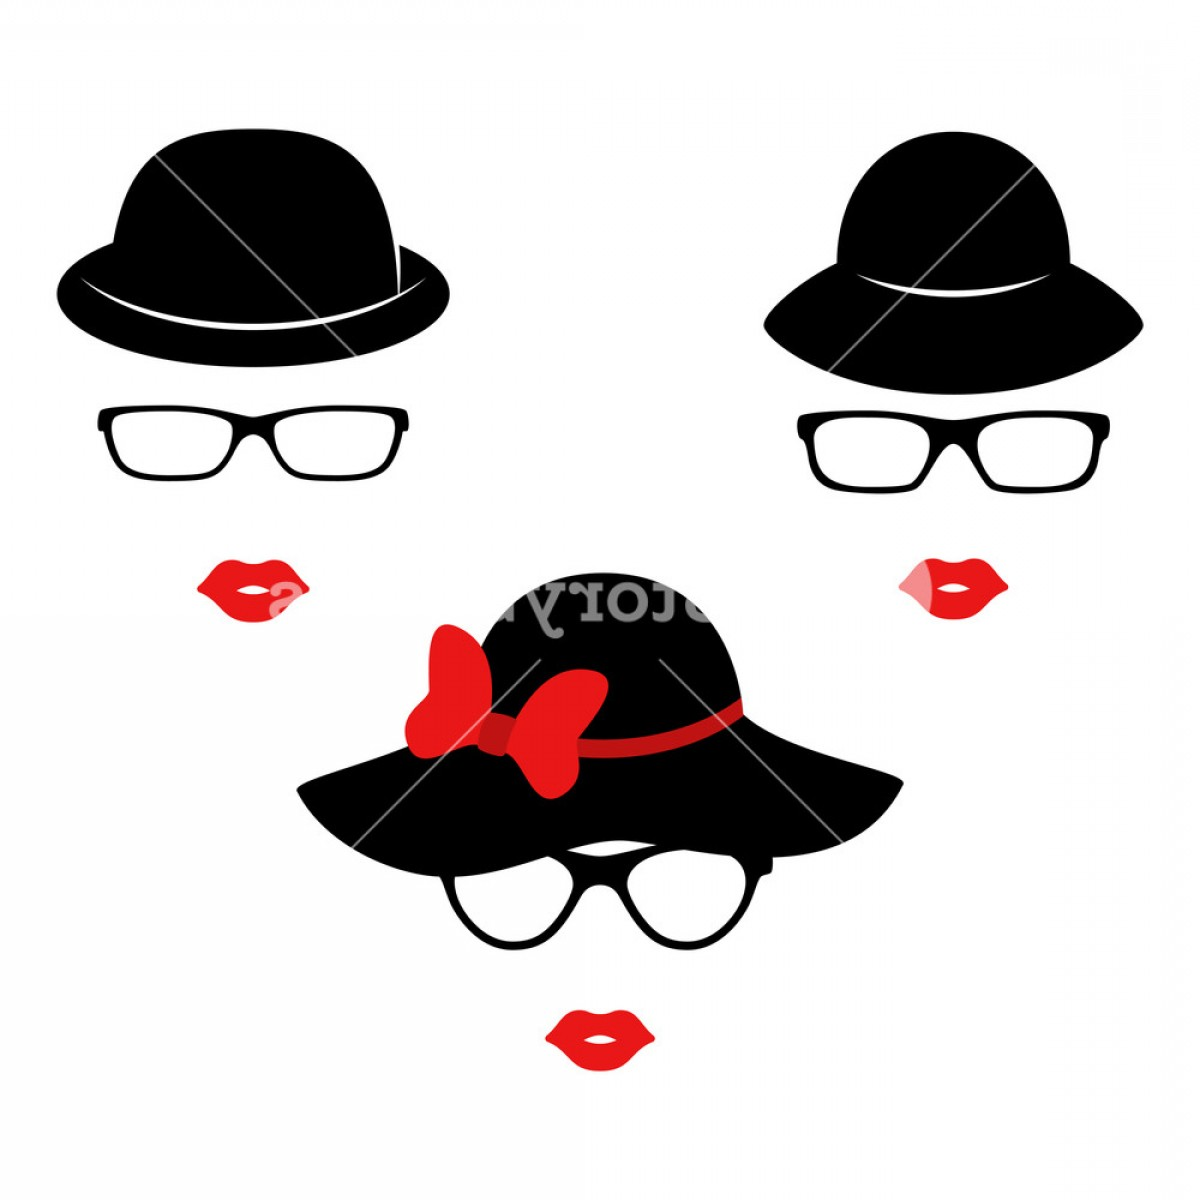 Vector Boutique: Retro Ladies In The Black Elegant Hats Woman Face Boutique Concept Vector Illustration Bvkbpwpgjdigepk